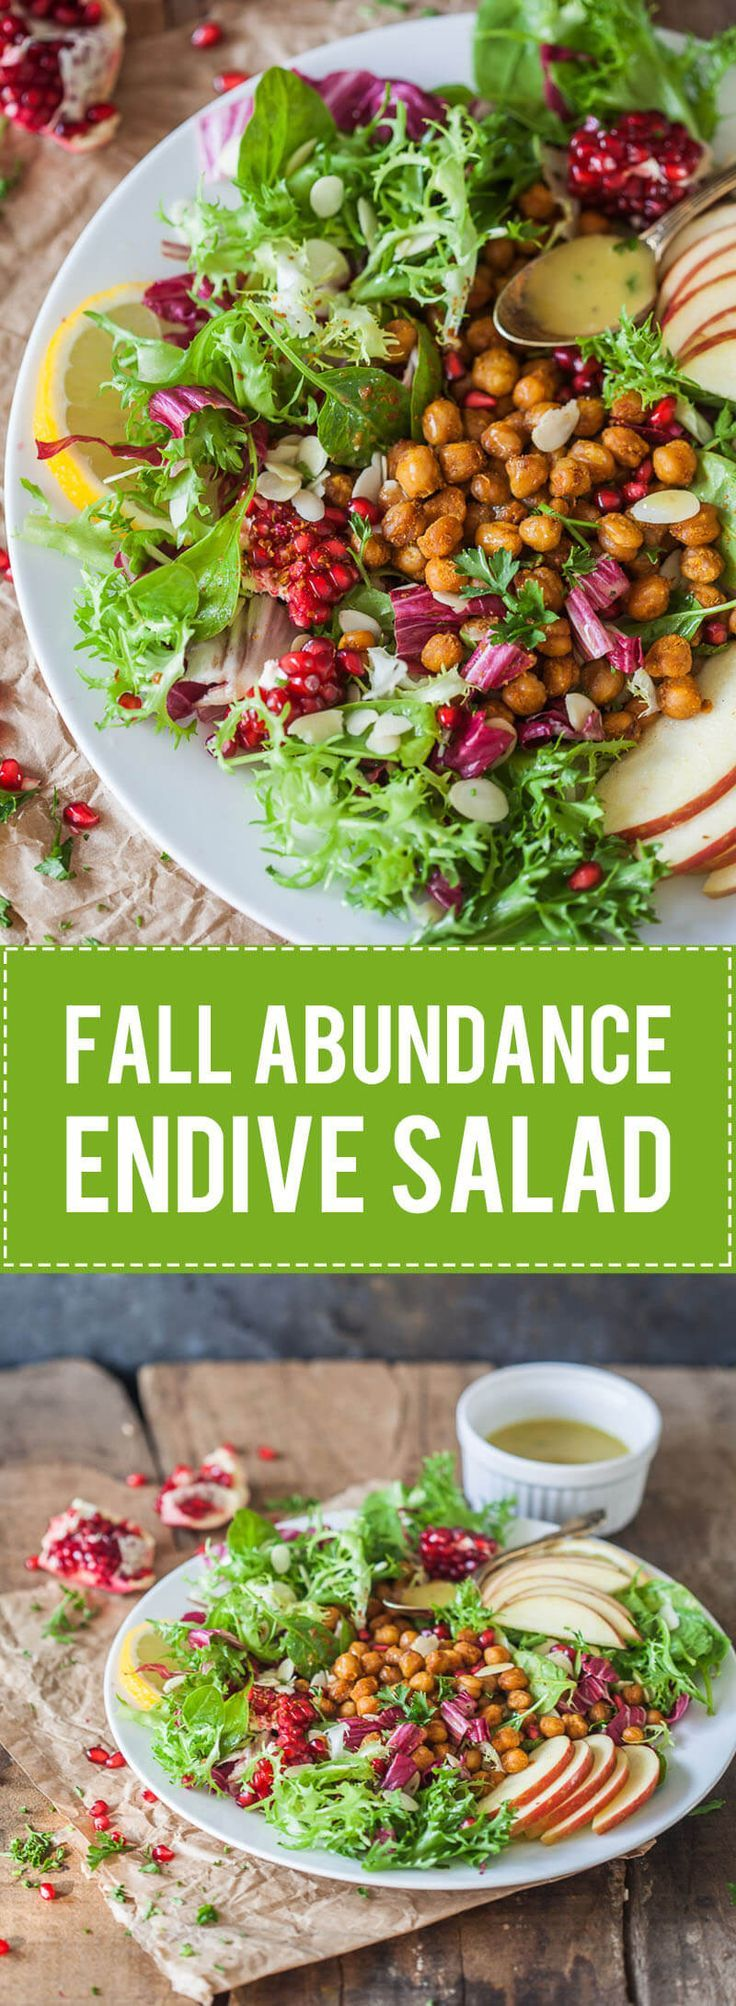 The Ultimate Fall Abundance Endive Salad is topped with Crispy Chickpeas, Apples & Mustard Vinaigrette. Vegan and Gluten-Free! #endive #salad #vegan #glutenfree